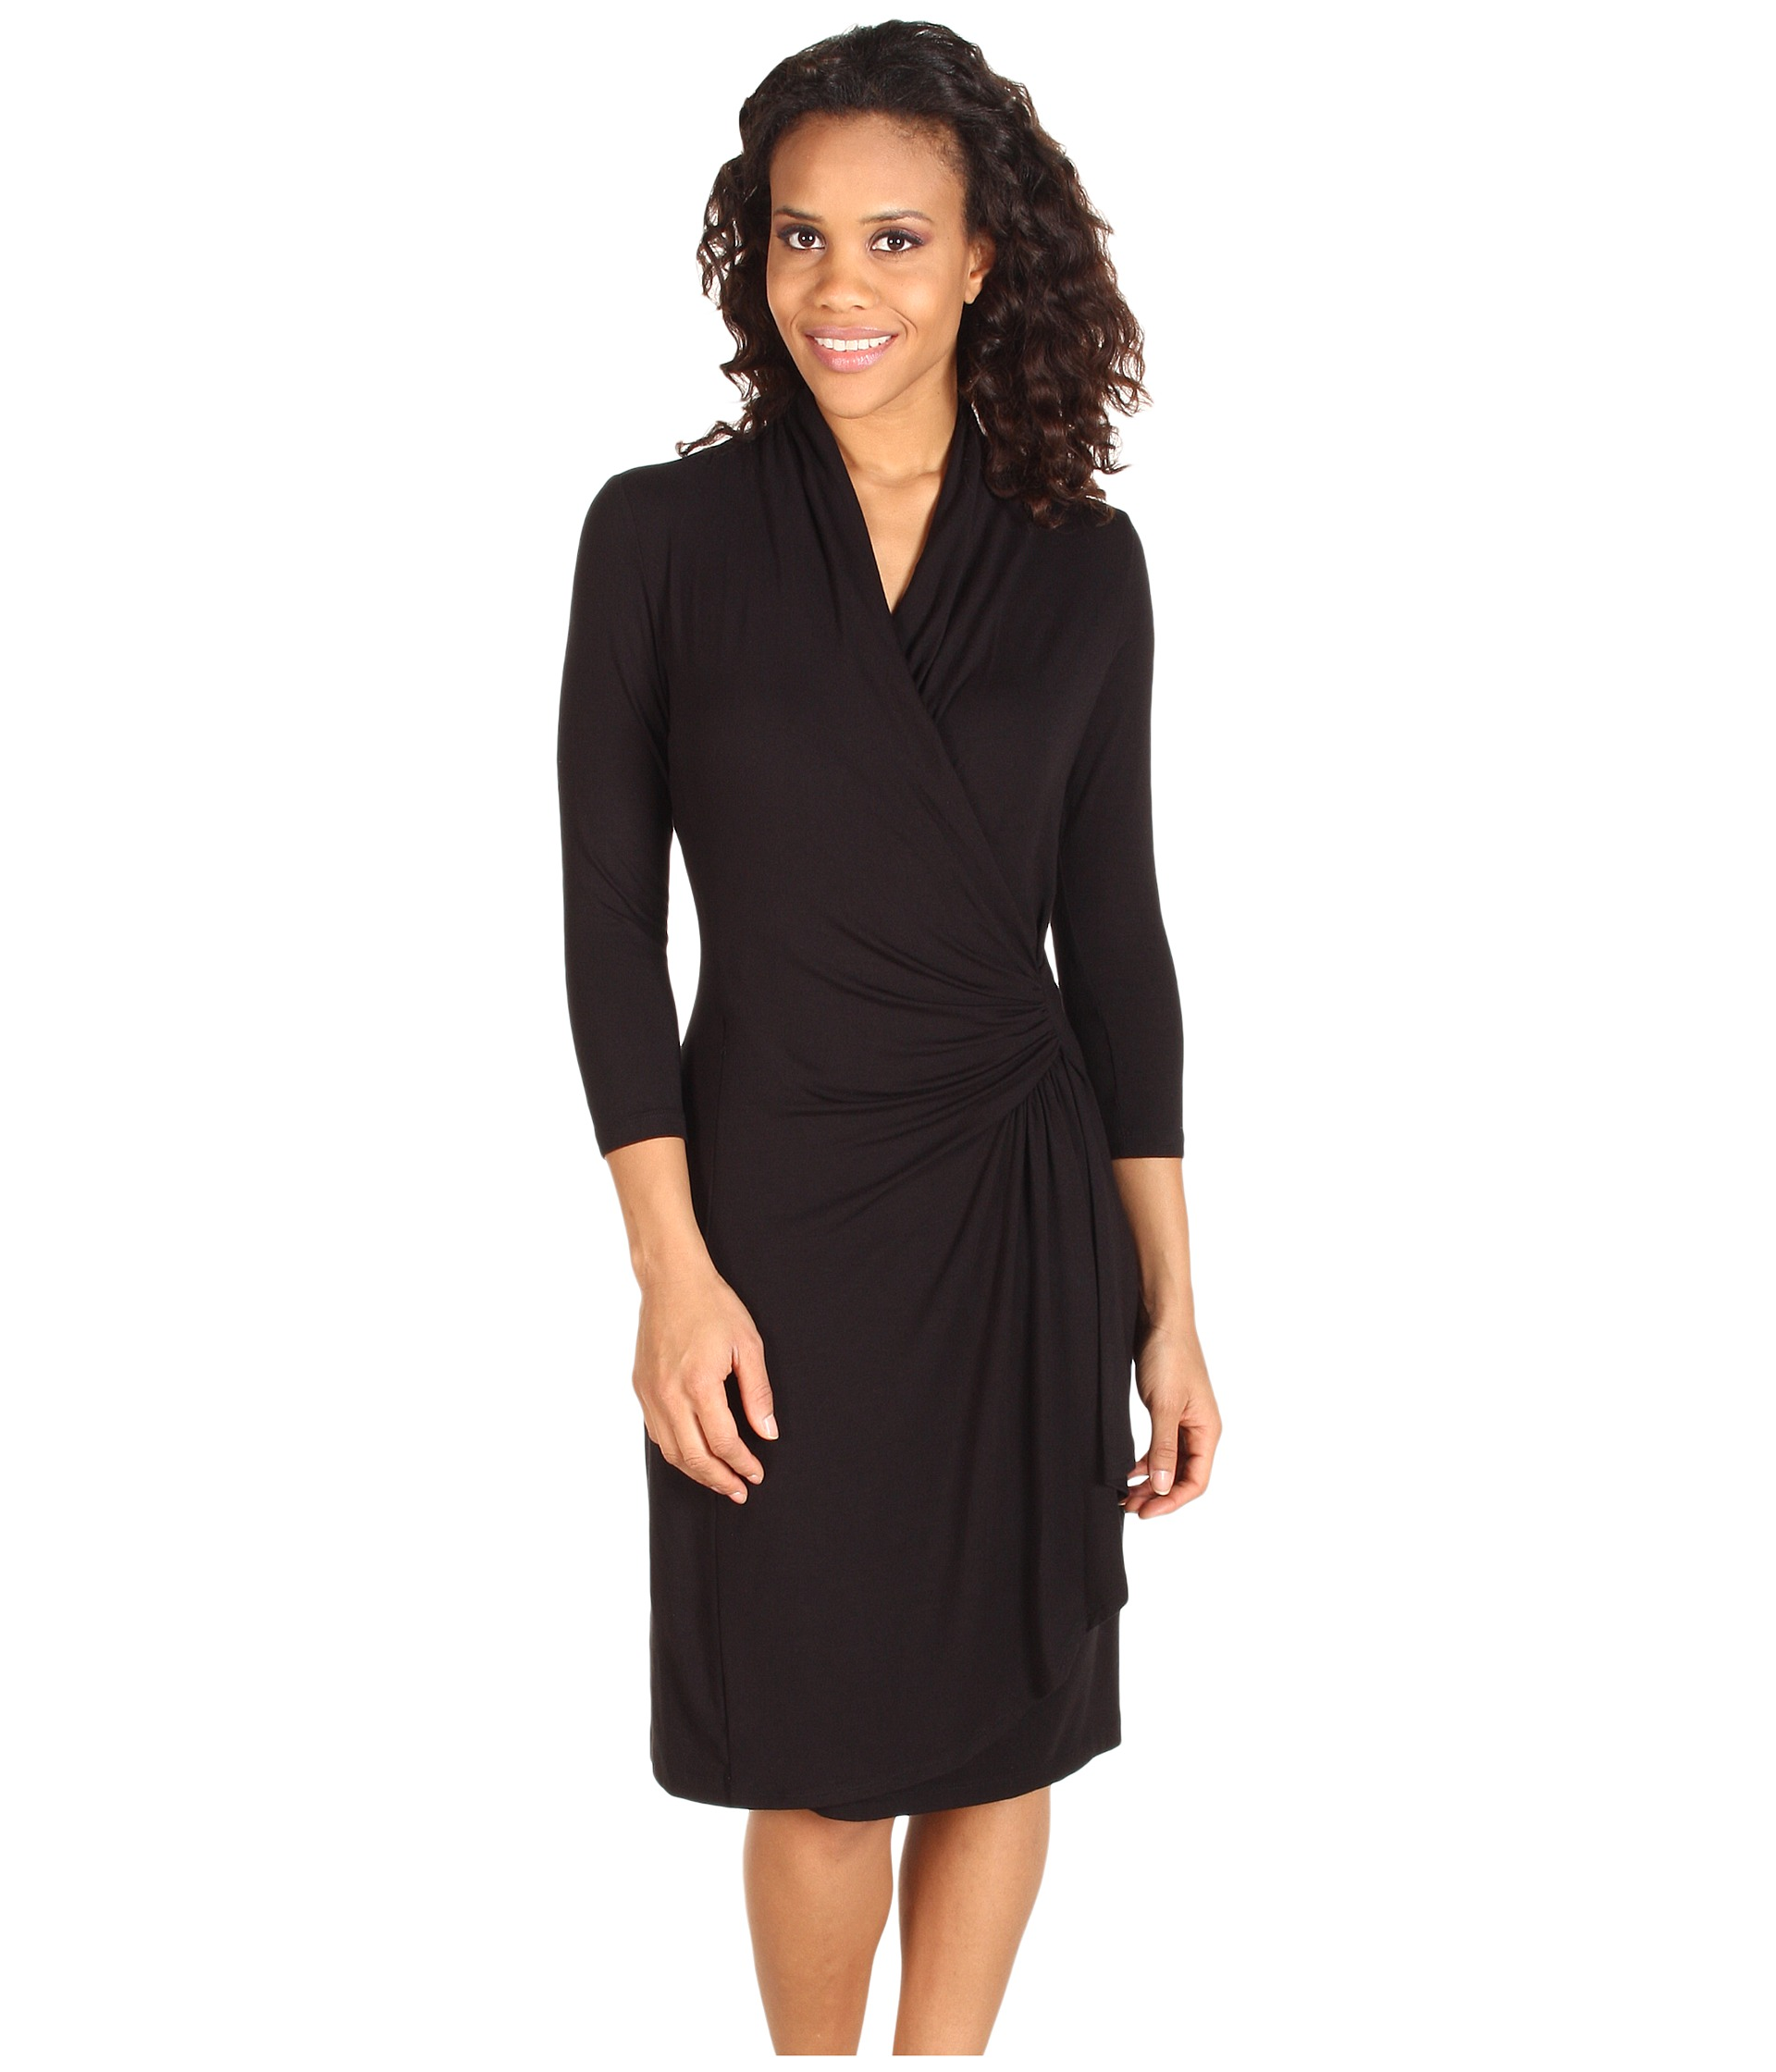 Wrap Dresses For Women